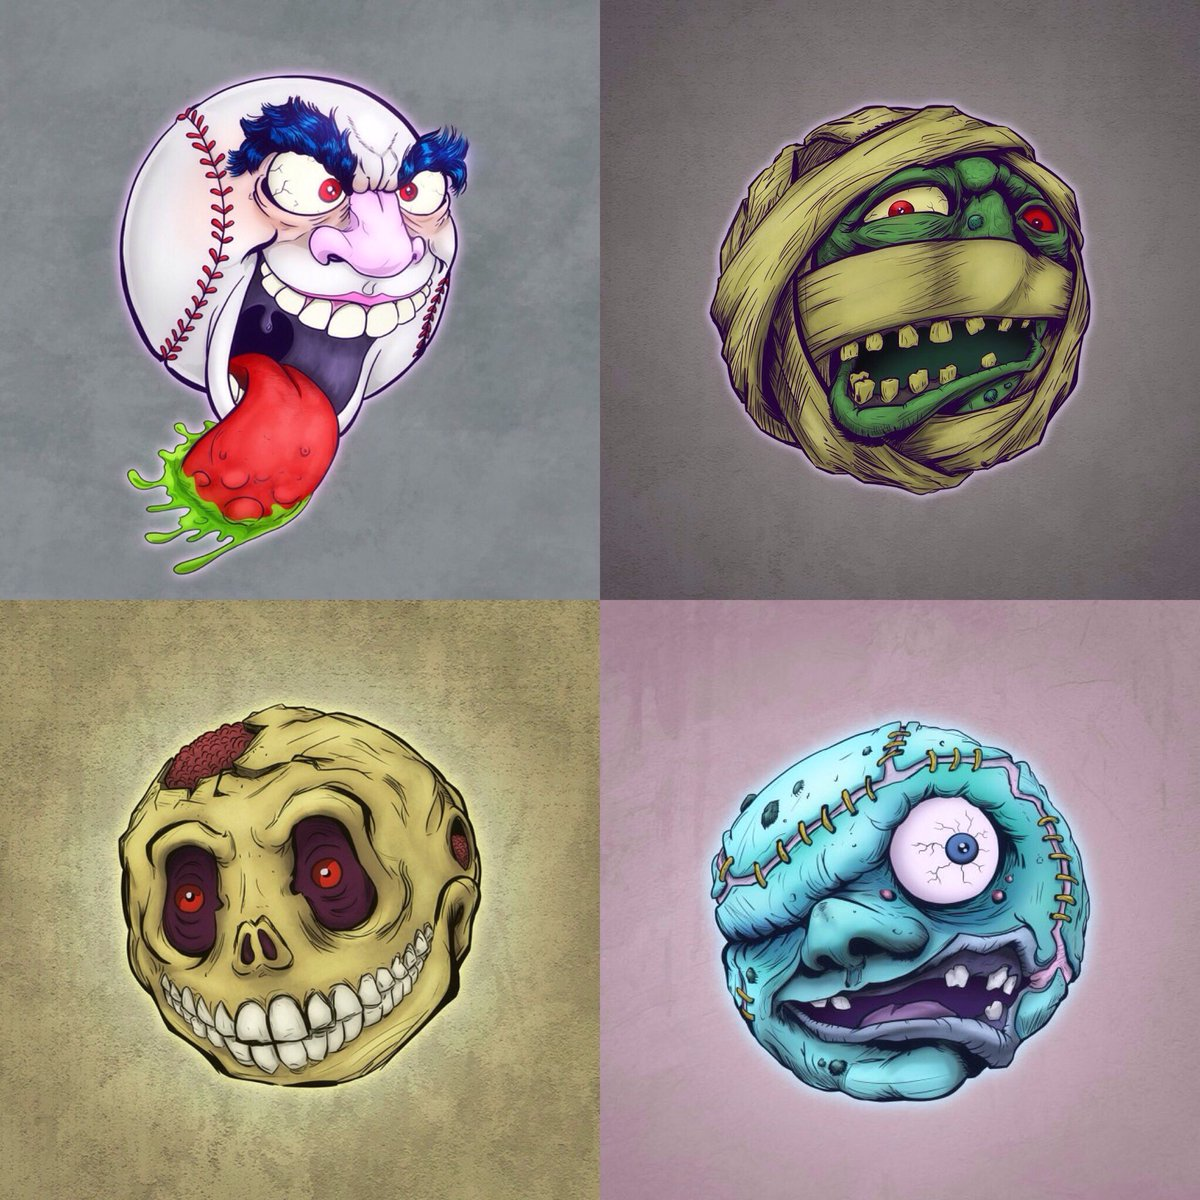 #Madballs series 1. All pencils by @FakeEyes22. Digital inks and colors by me. Hope you all enjoyed this collab. https://t.co/rskSEAcRxw